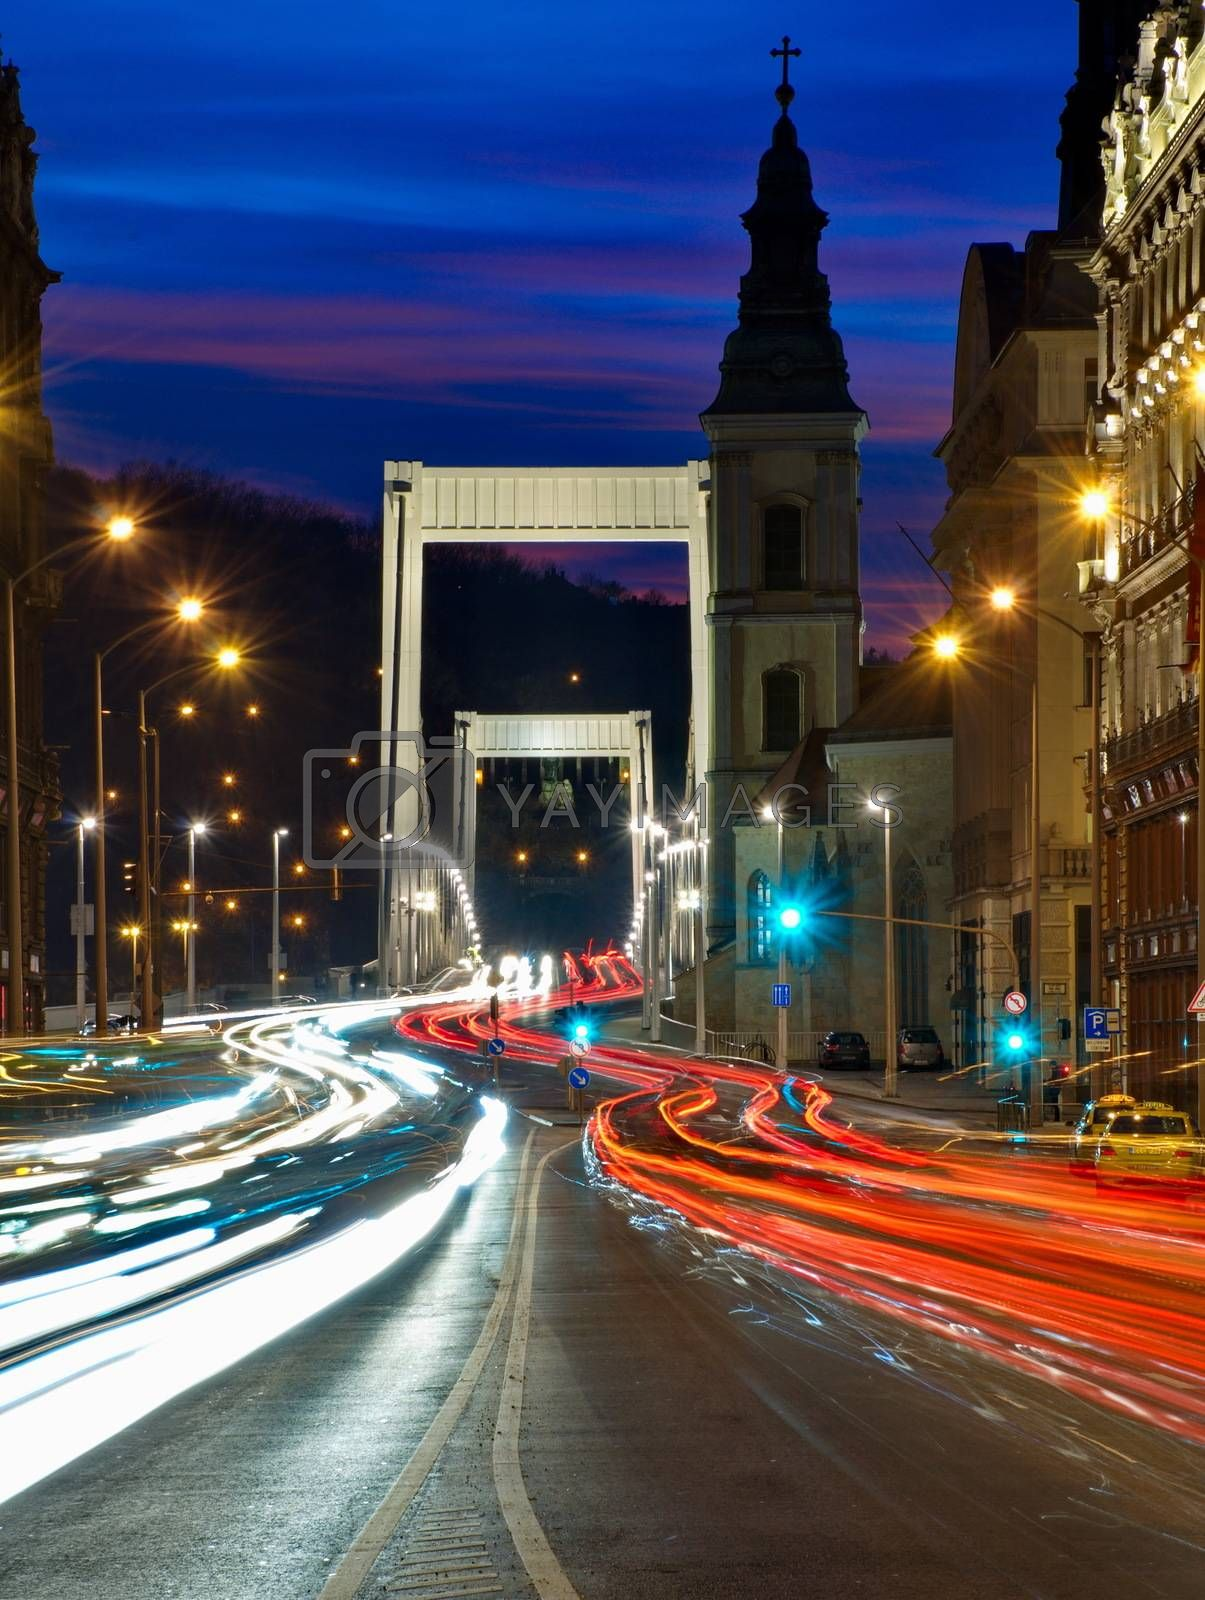 Traffic on the bridge at night in Budapest, Hungary